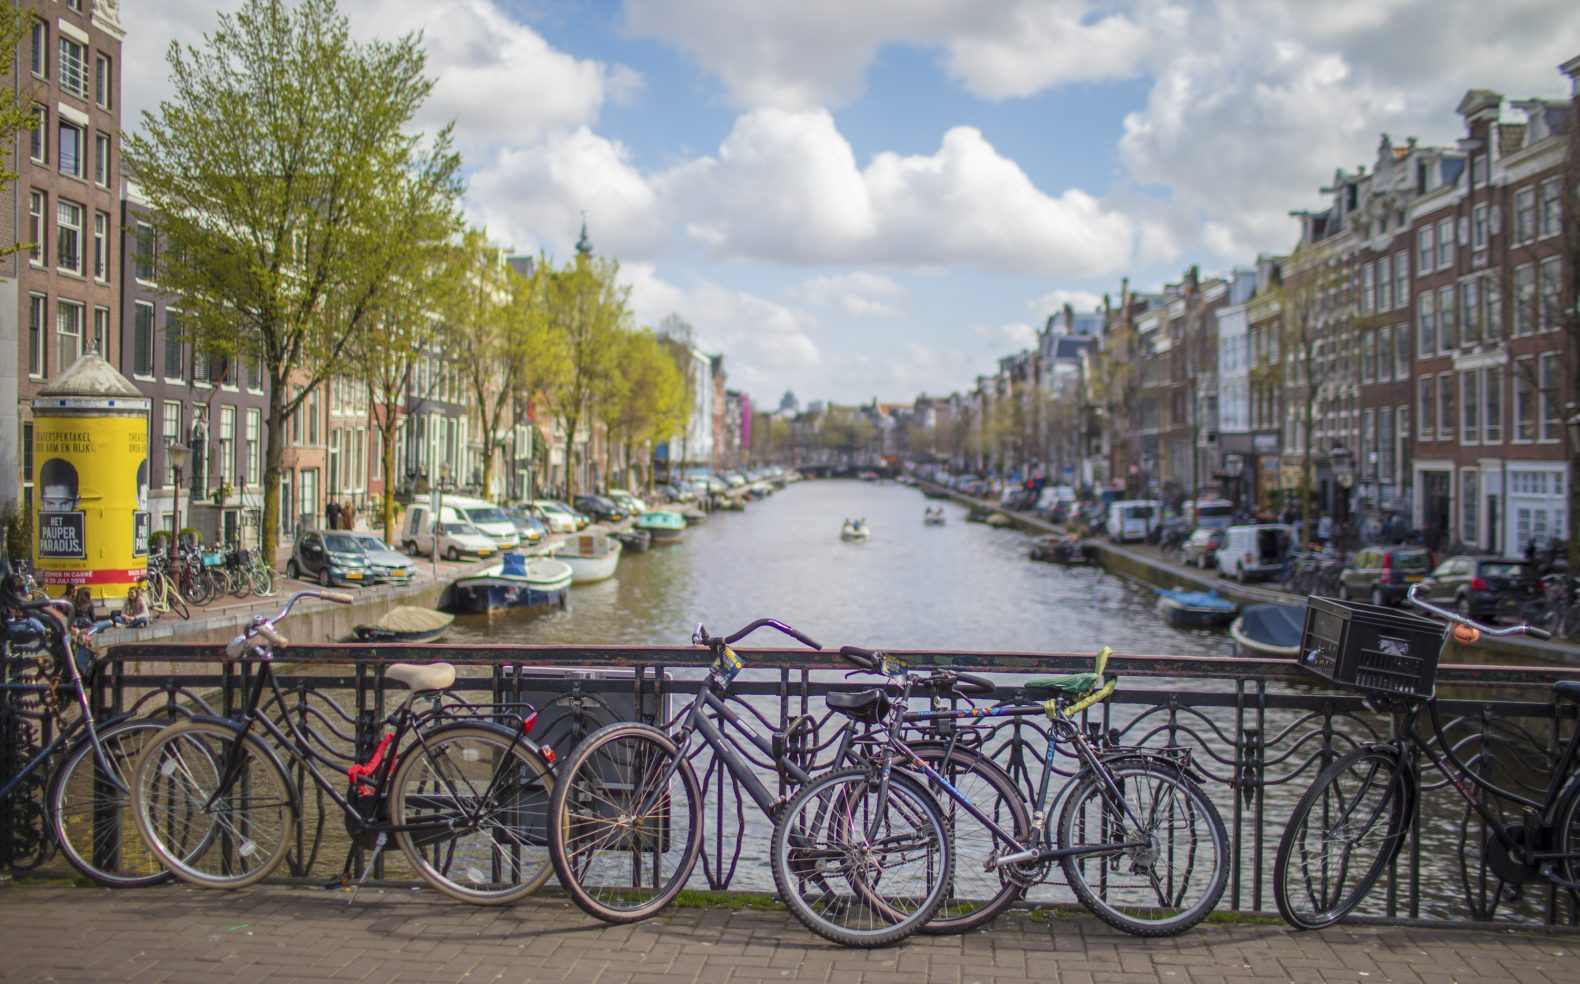 Professional travel photograph of bikes leaning against a metal bridge railing overlooking a canal in Amsterdam.